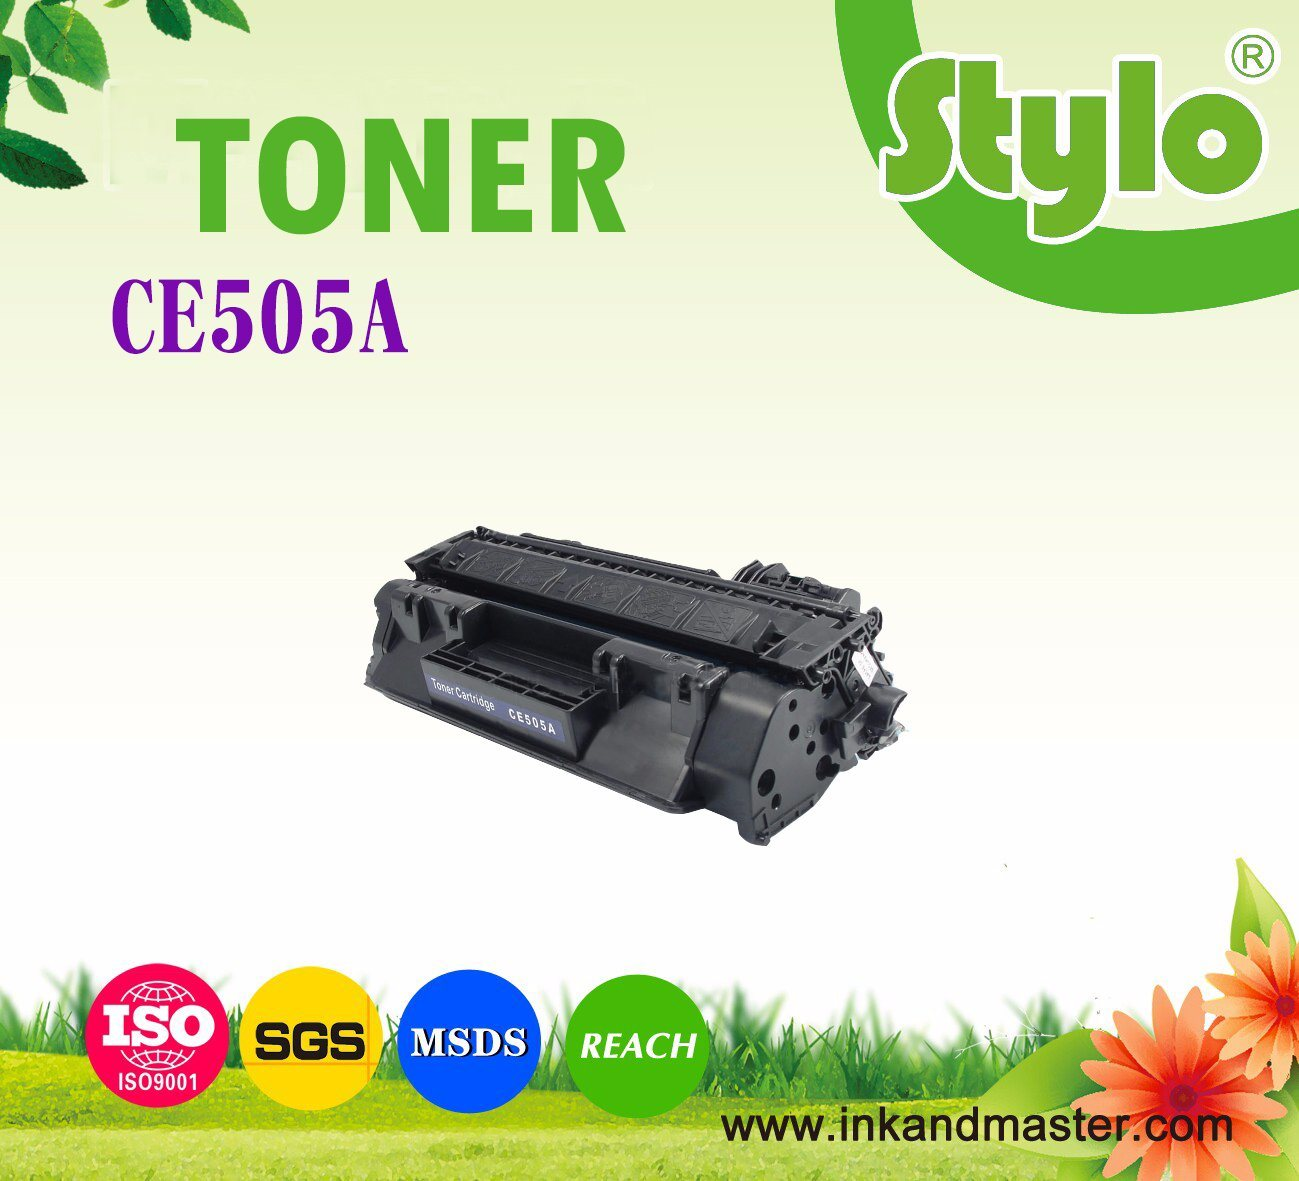 Ce505A Toner Cartridge for HP Laserjet Printer